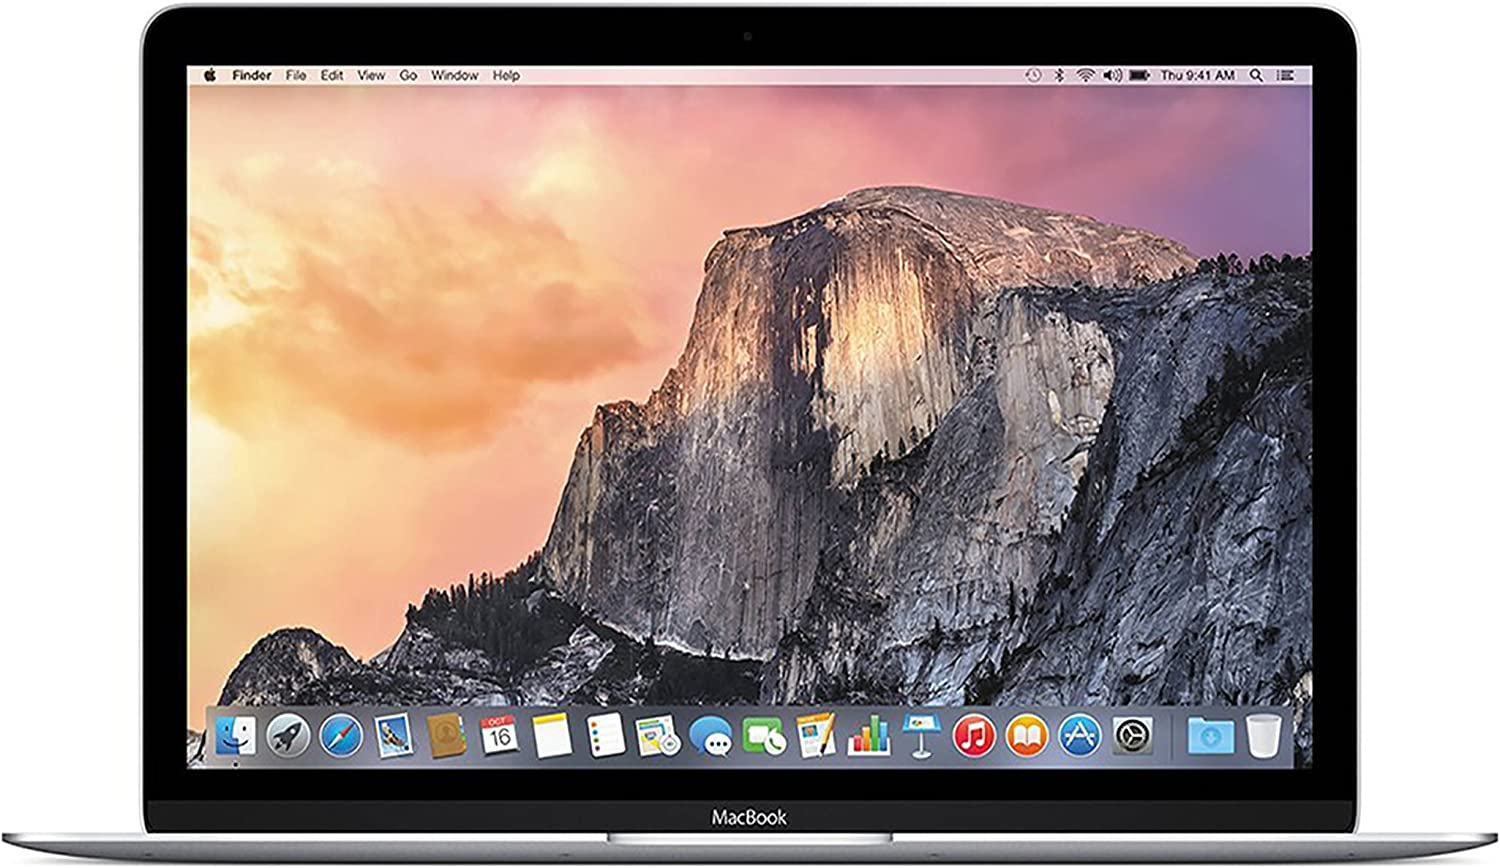 Apple MacBook MF865LL/A 12-inch Laptop with Retina Display 512GB, Silver - (Renewed)